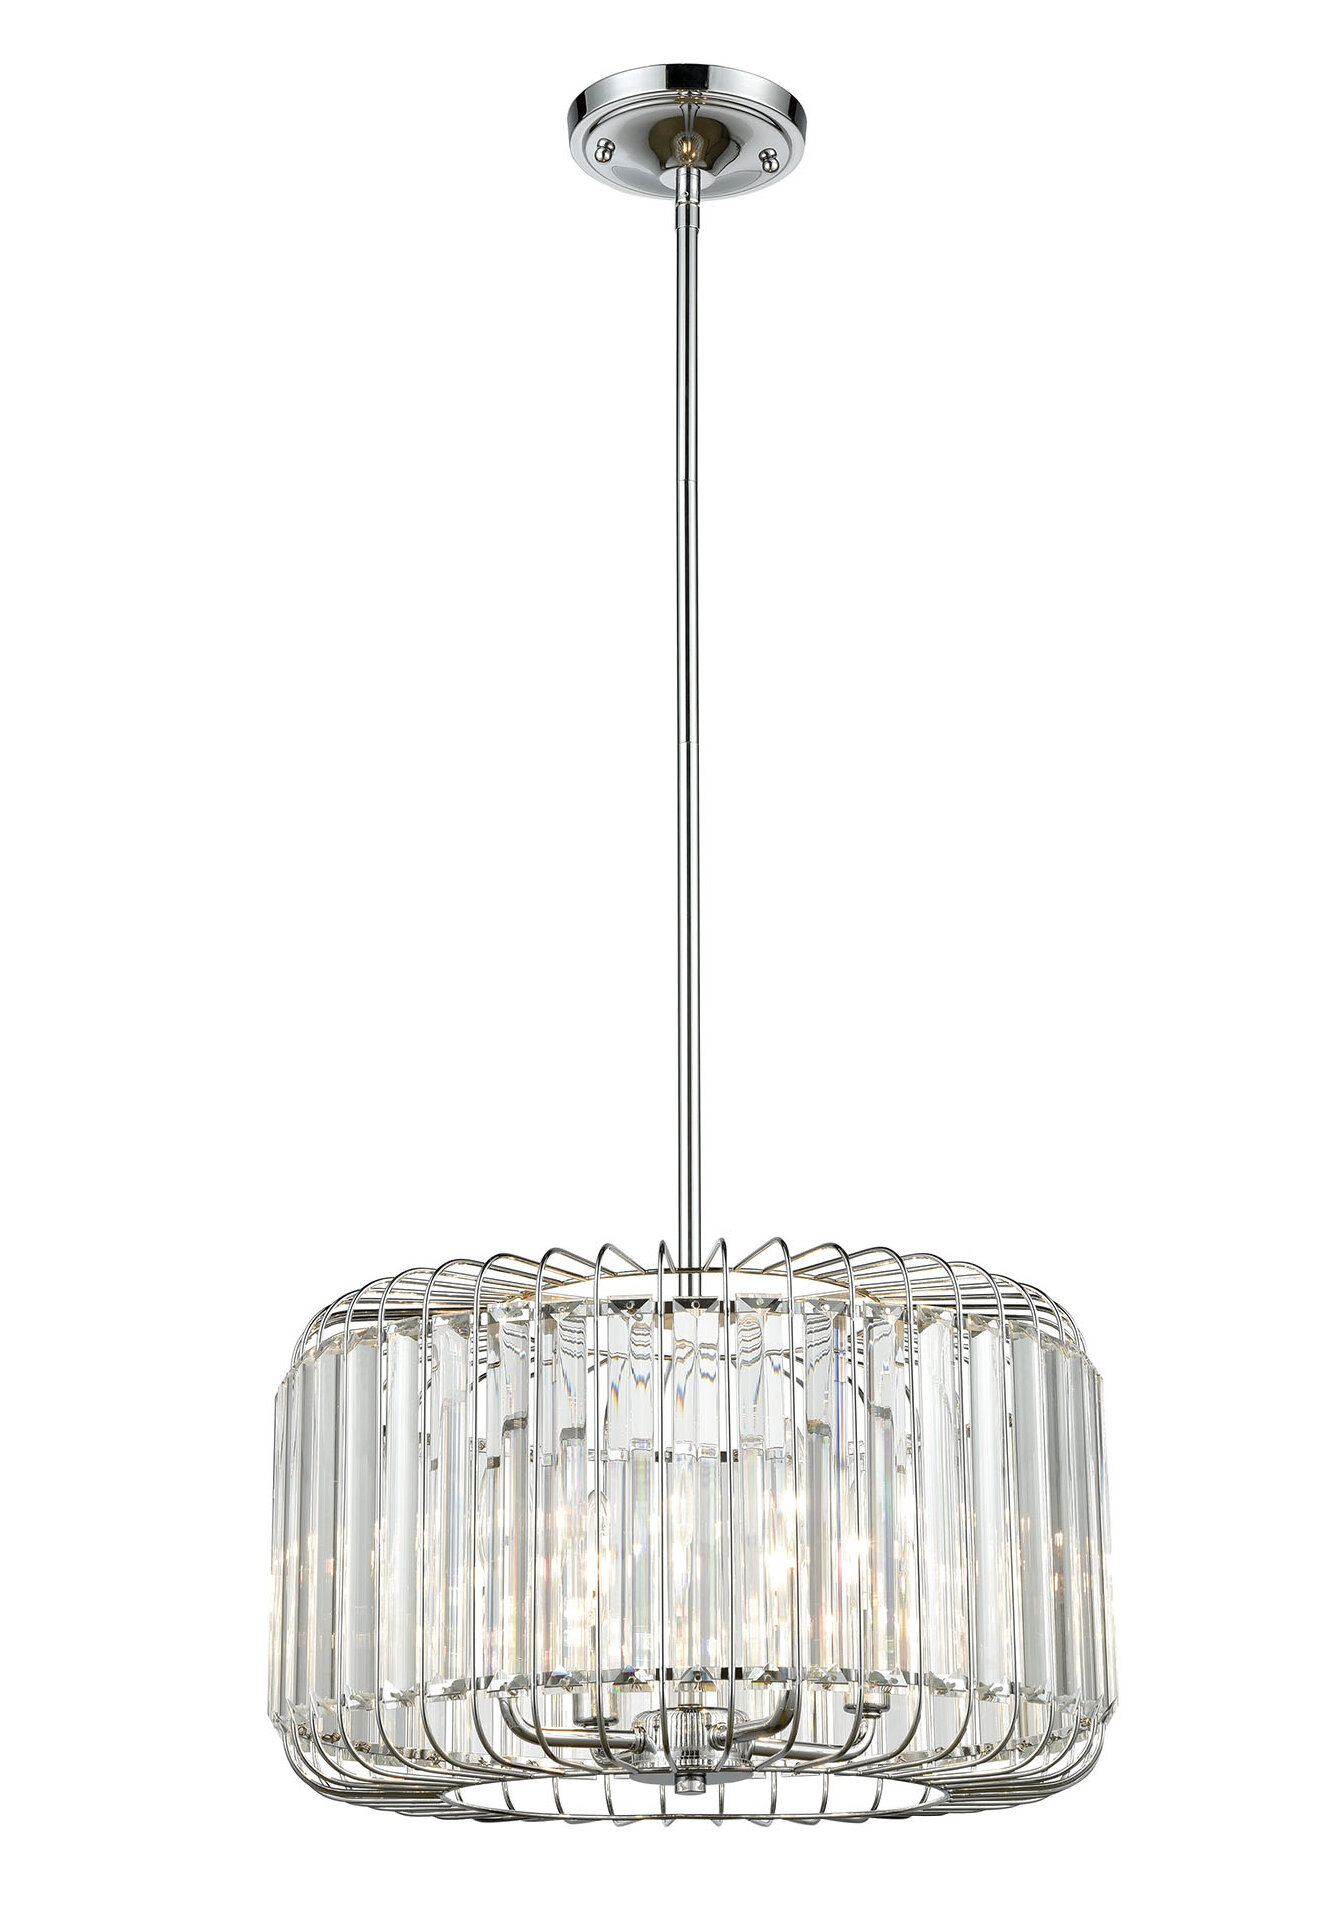 Polished Chrome Unique Statement Ceiling Lights You Ll Love In 2021 Wayfair